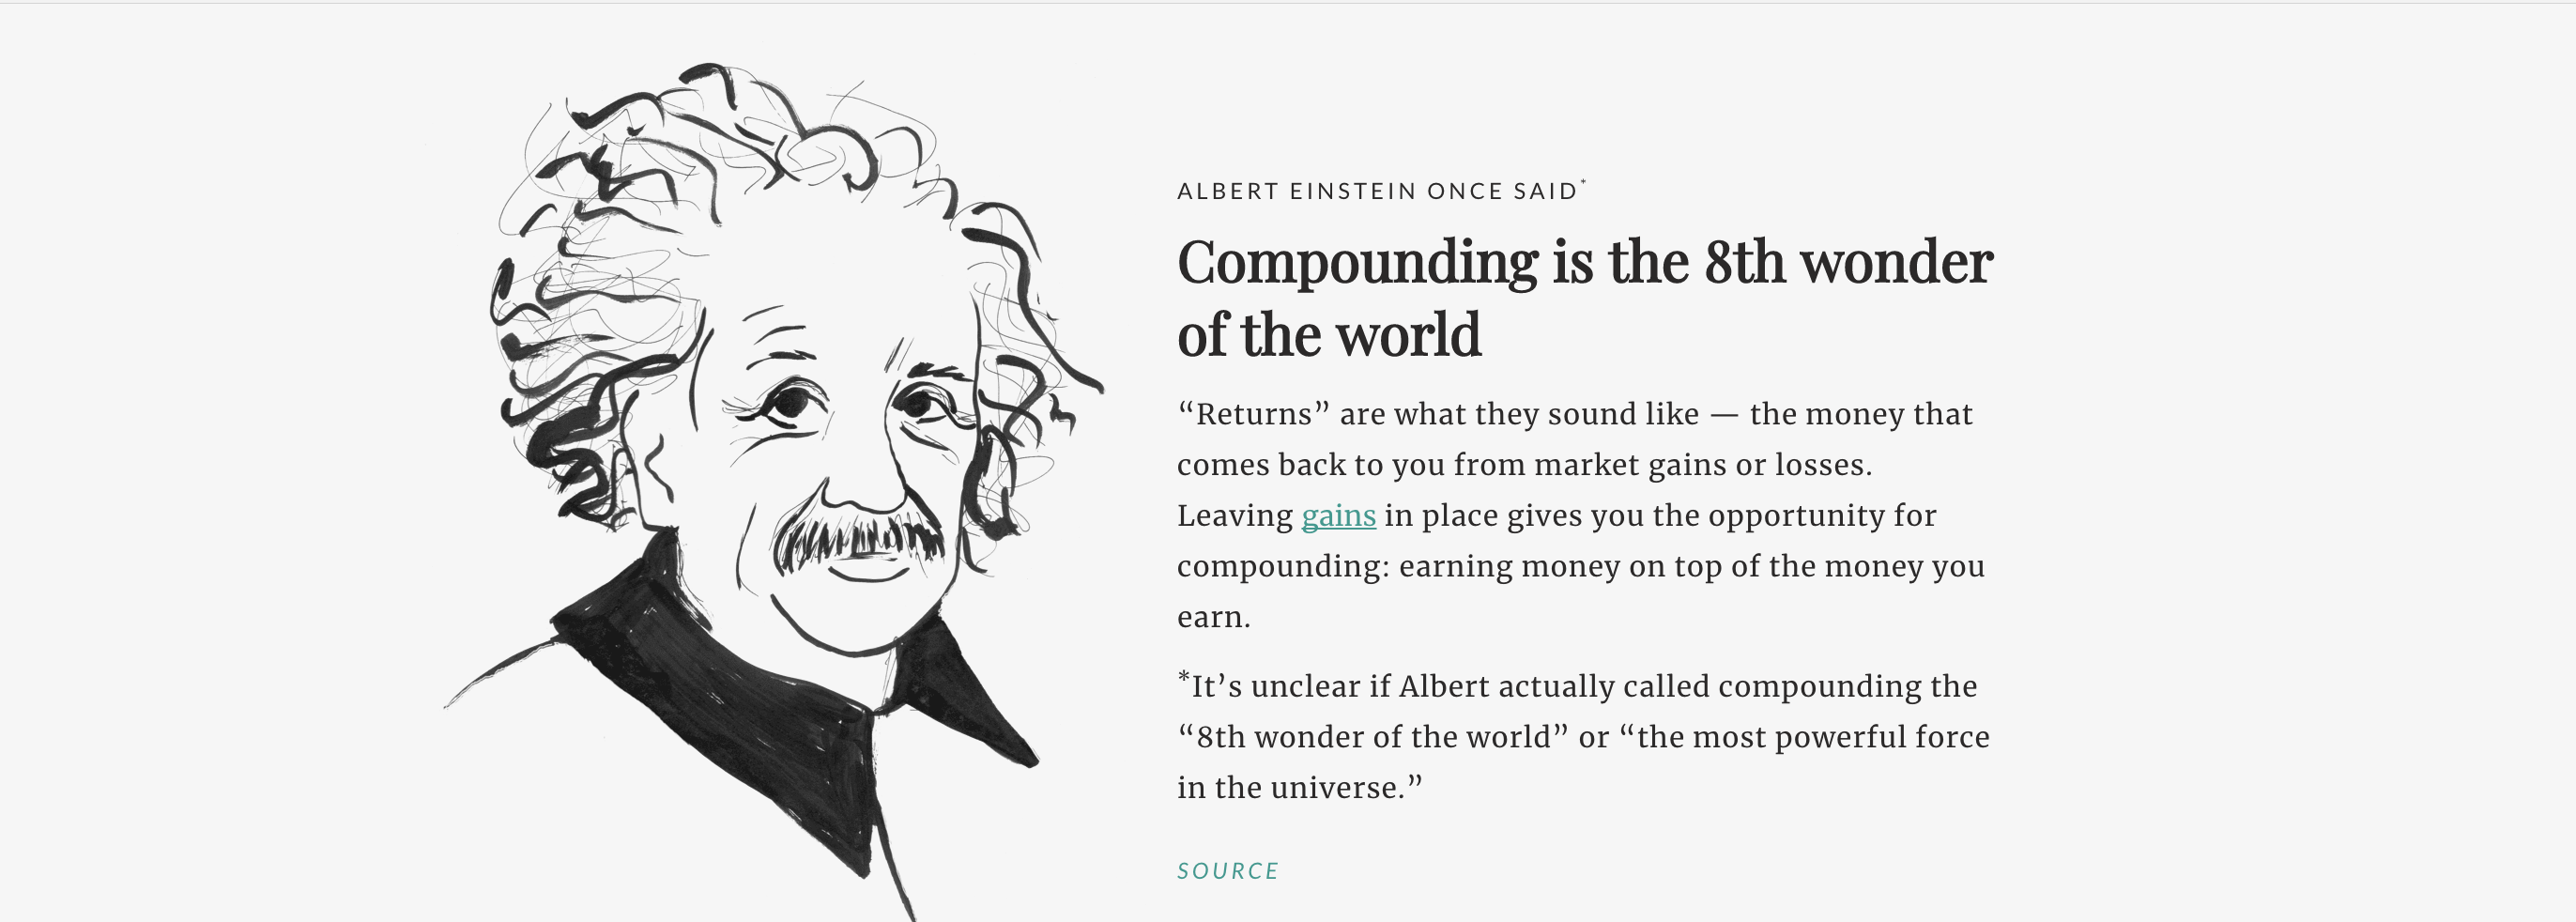 Compounding is the 8th wonder of the world